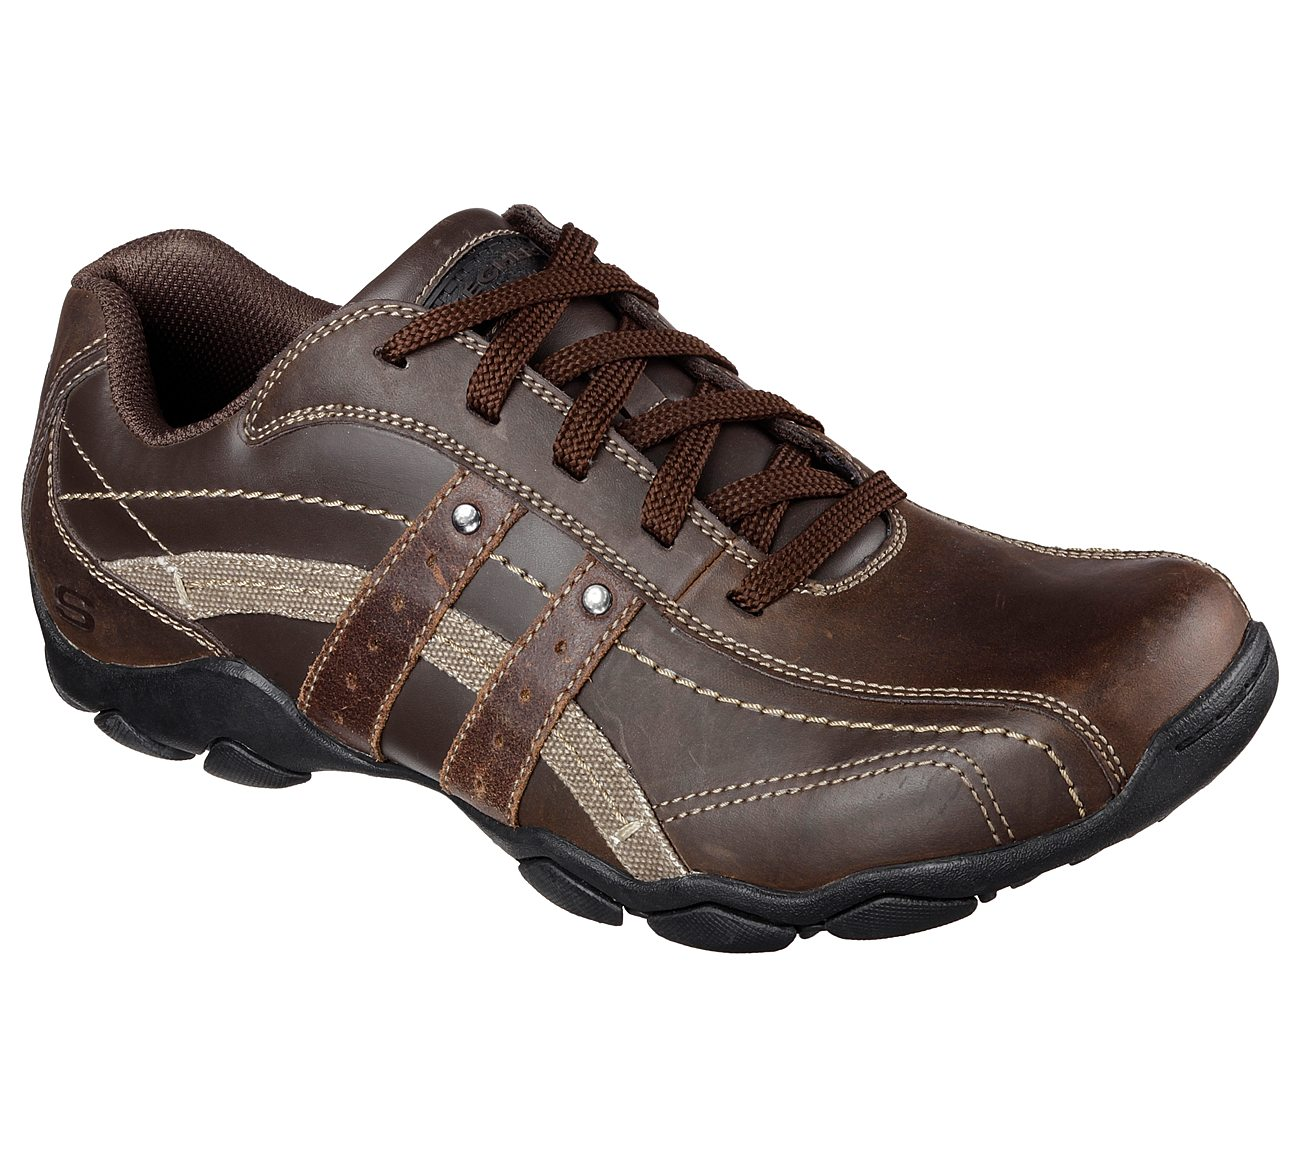 2824a8aab187 Buy SKECHERS Diameter - Blake Modern Comfort Shoes only  48.00